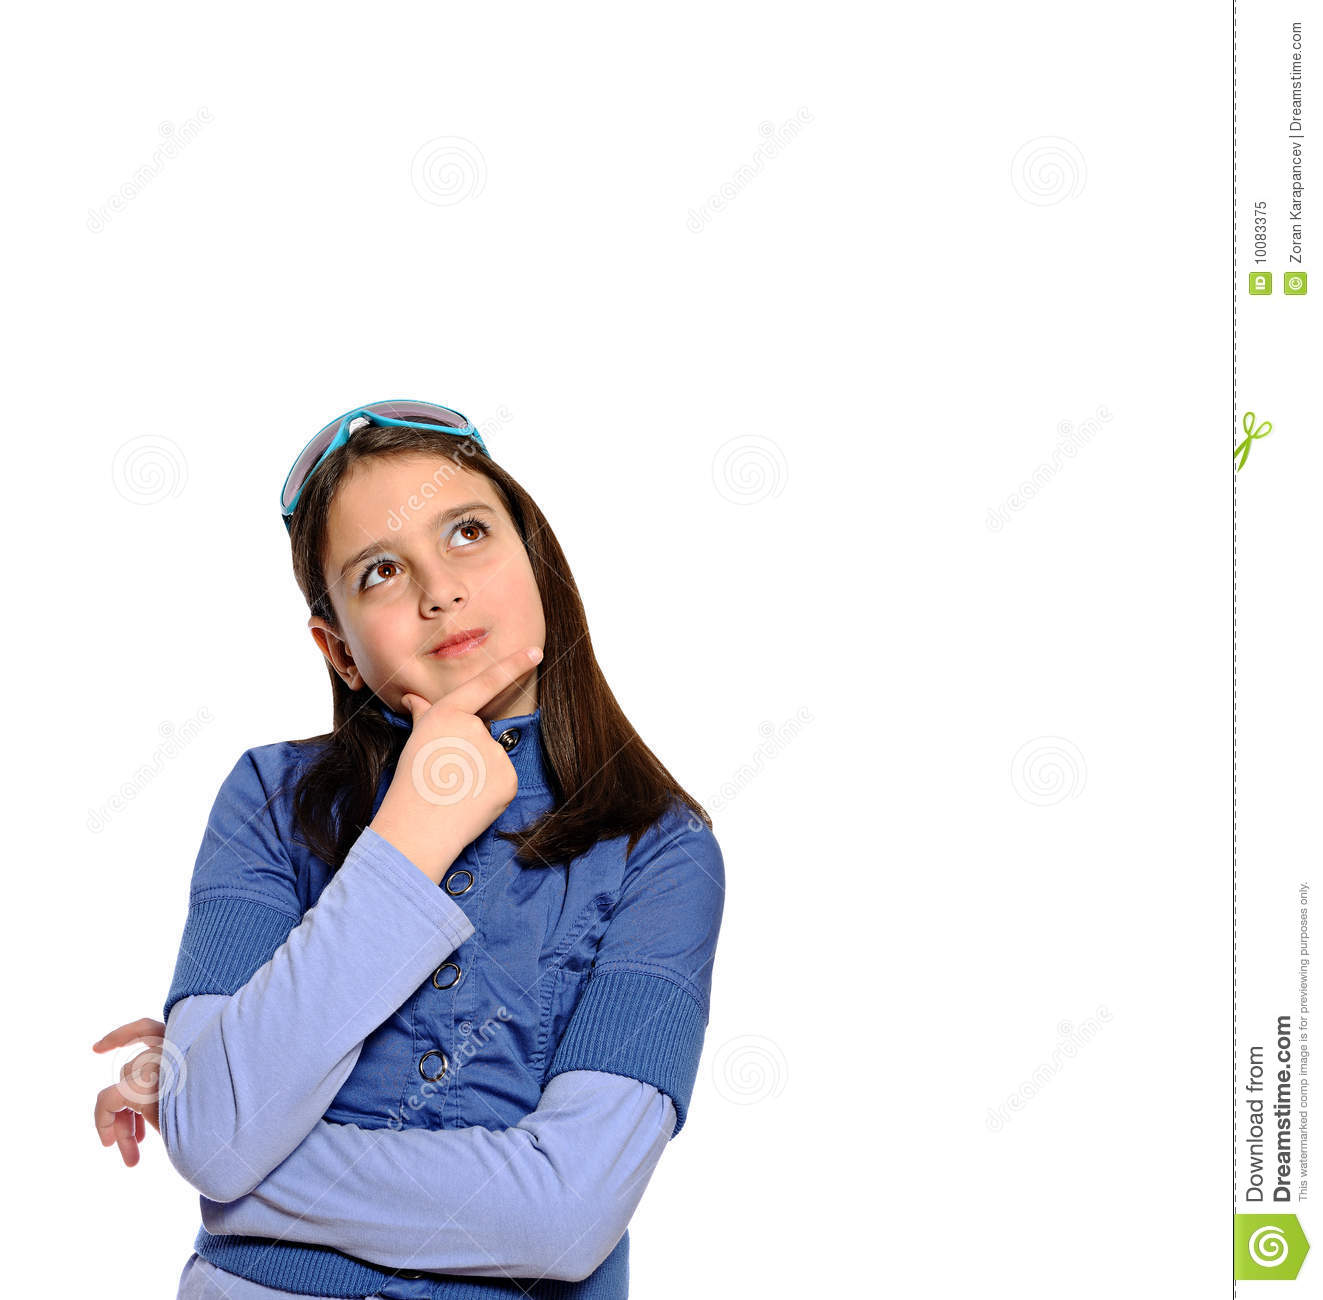 cute girl in thinking pose stock image image of beauty 10083375